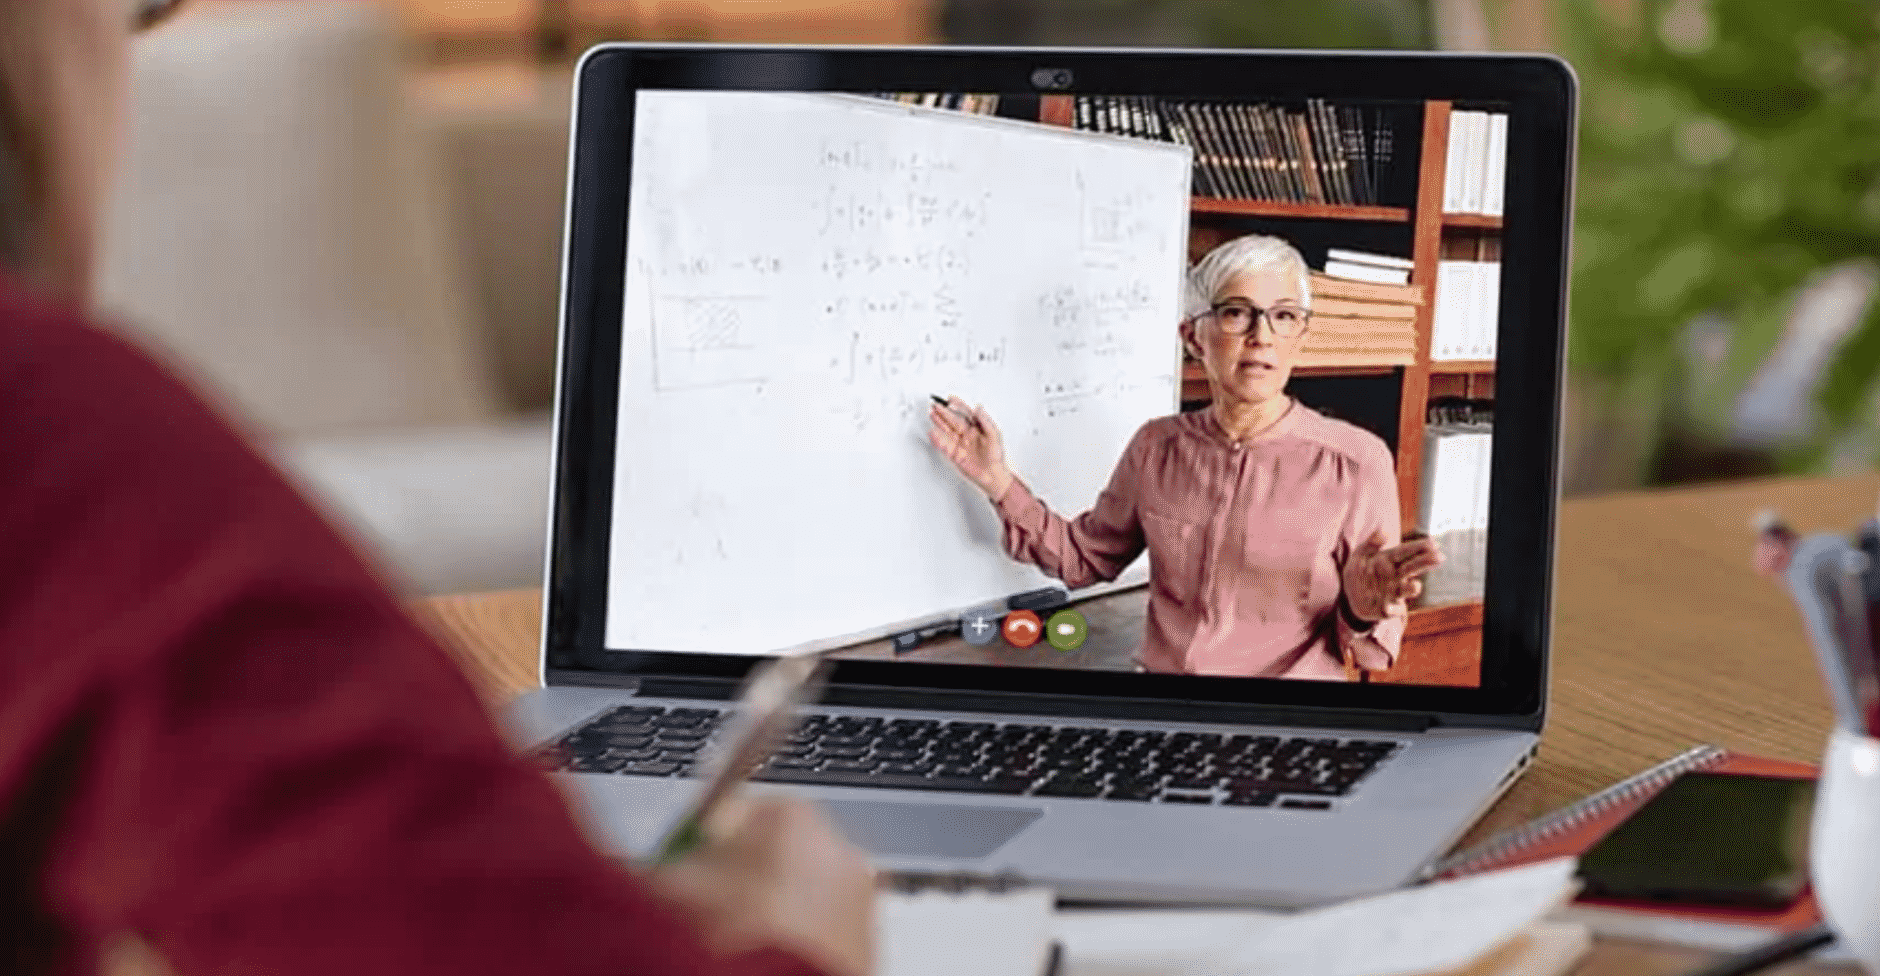 The Benefits of Using the Online Whiteboard for Remote Learning